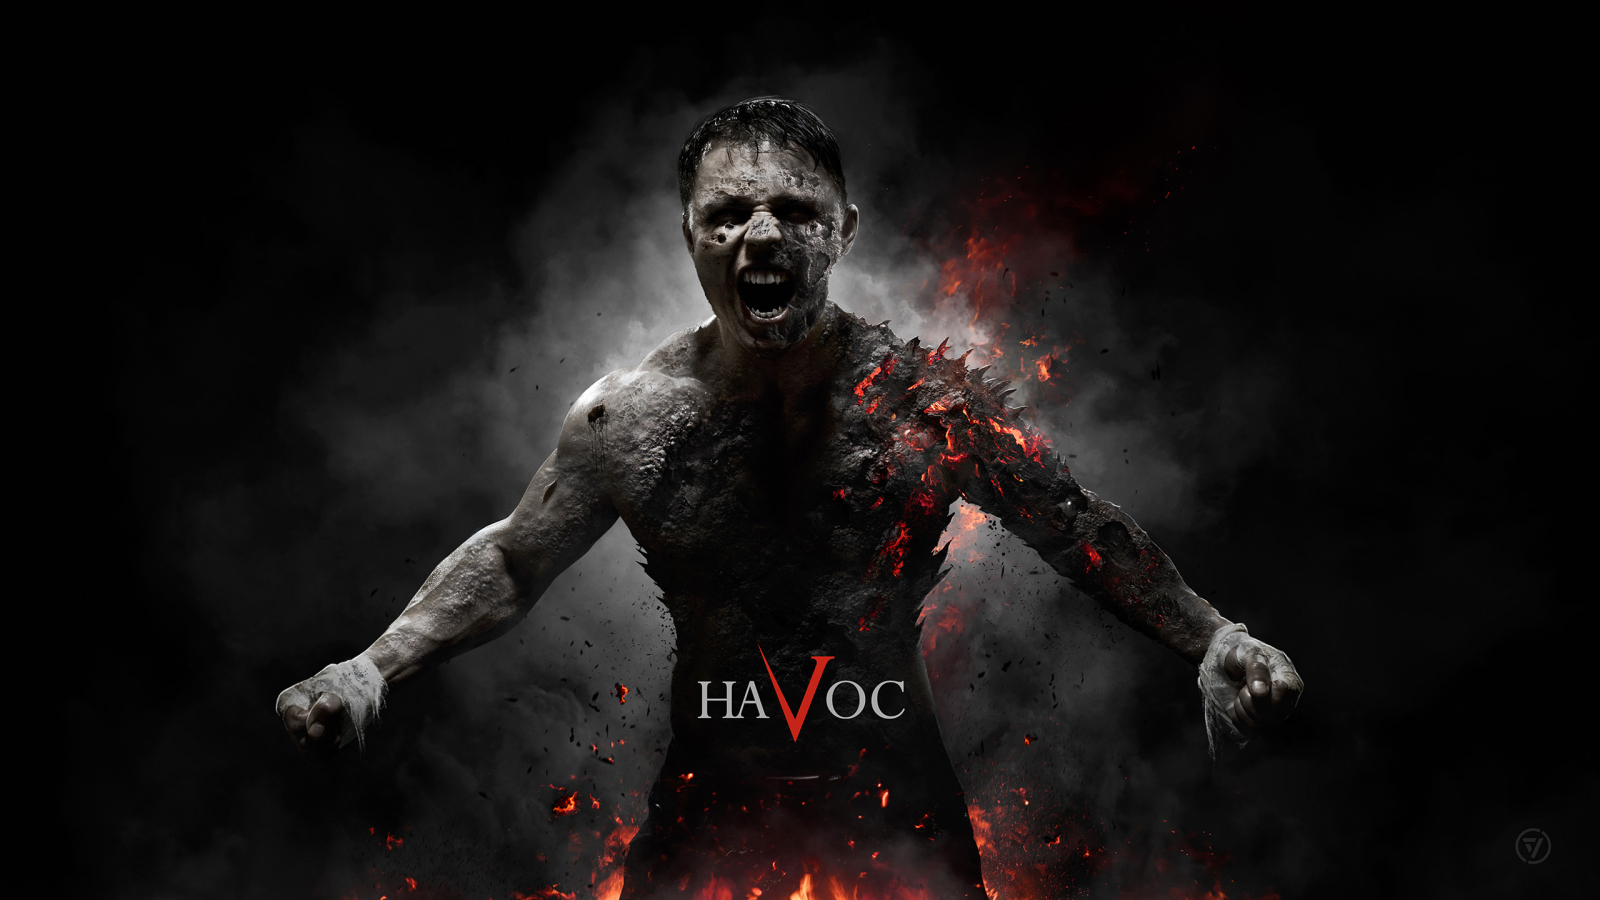 Havoc for 1600 x 900 HDTV resolution